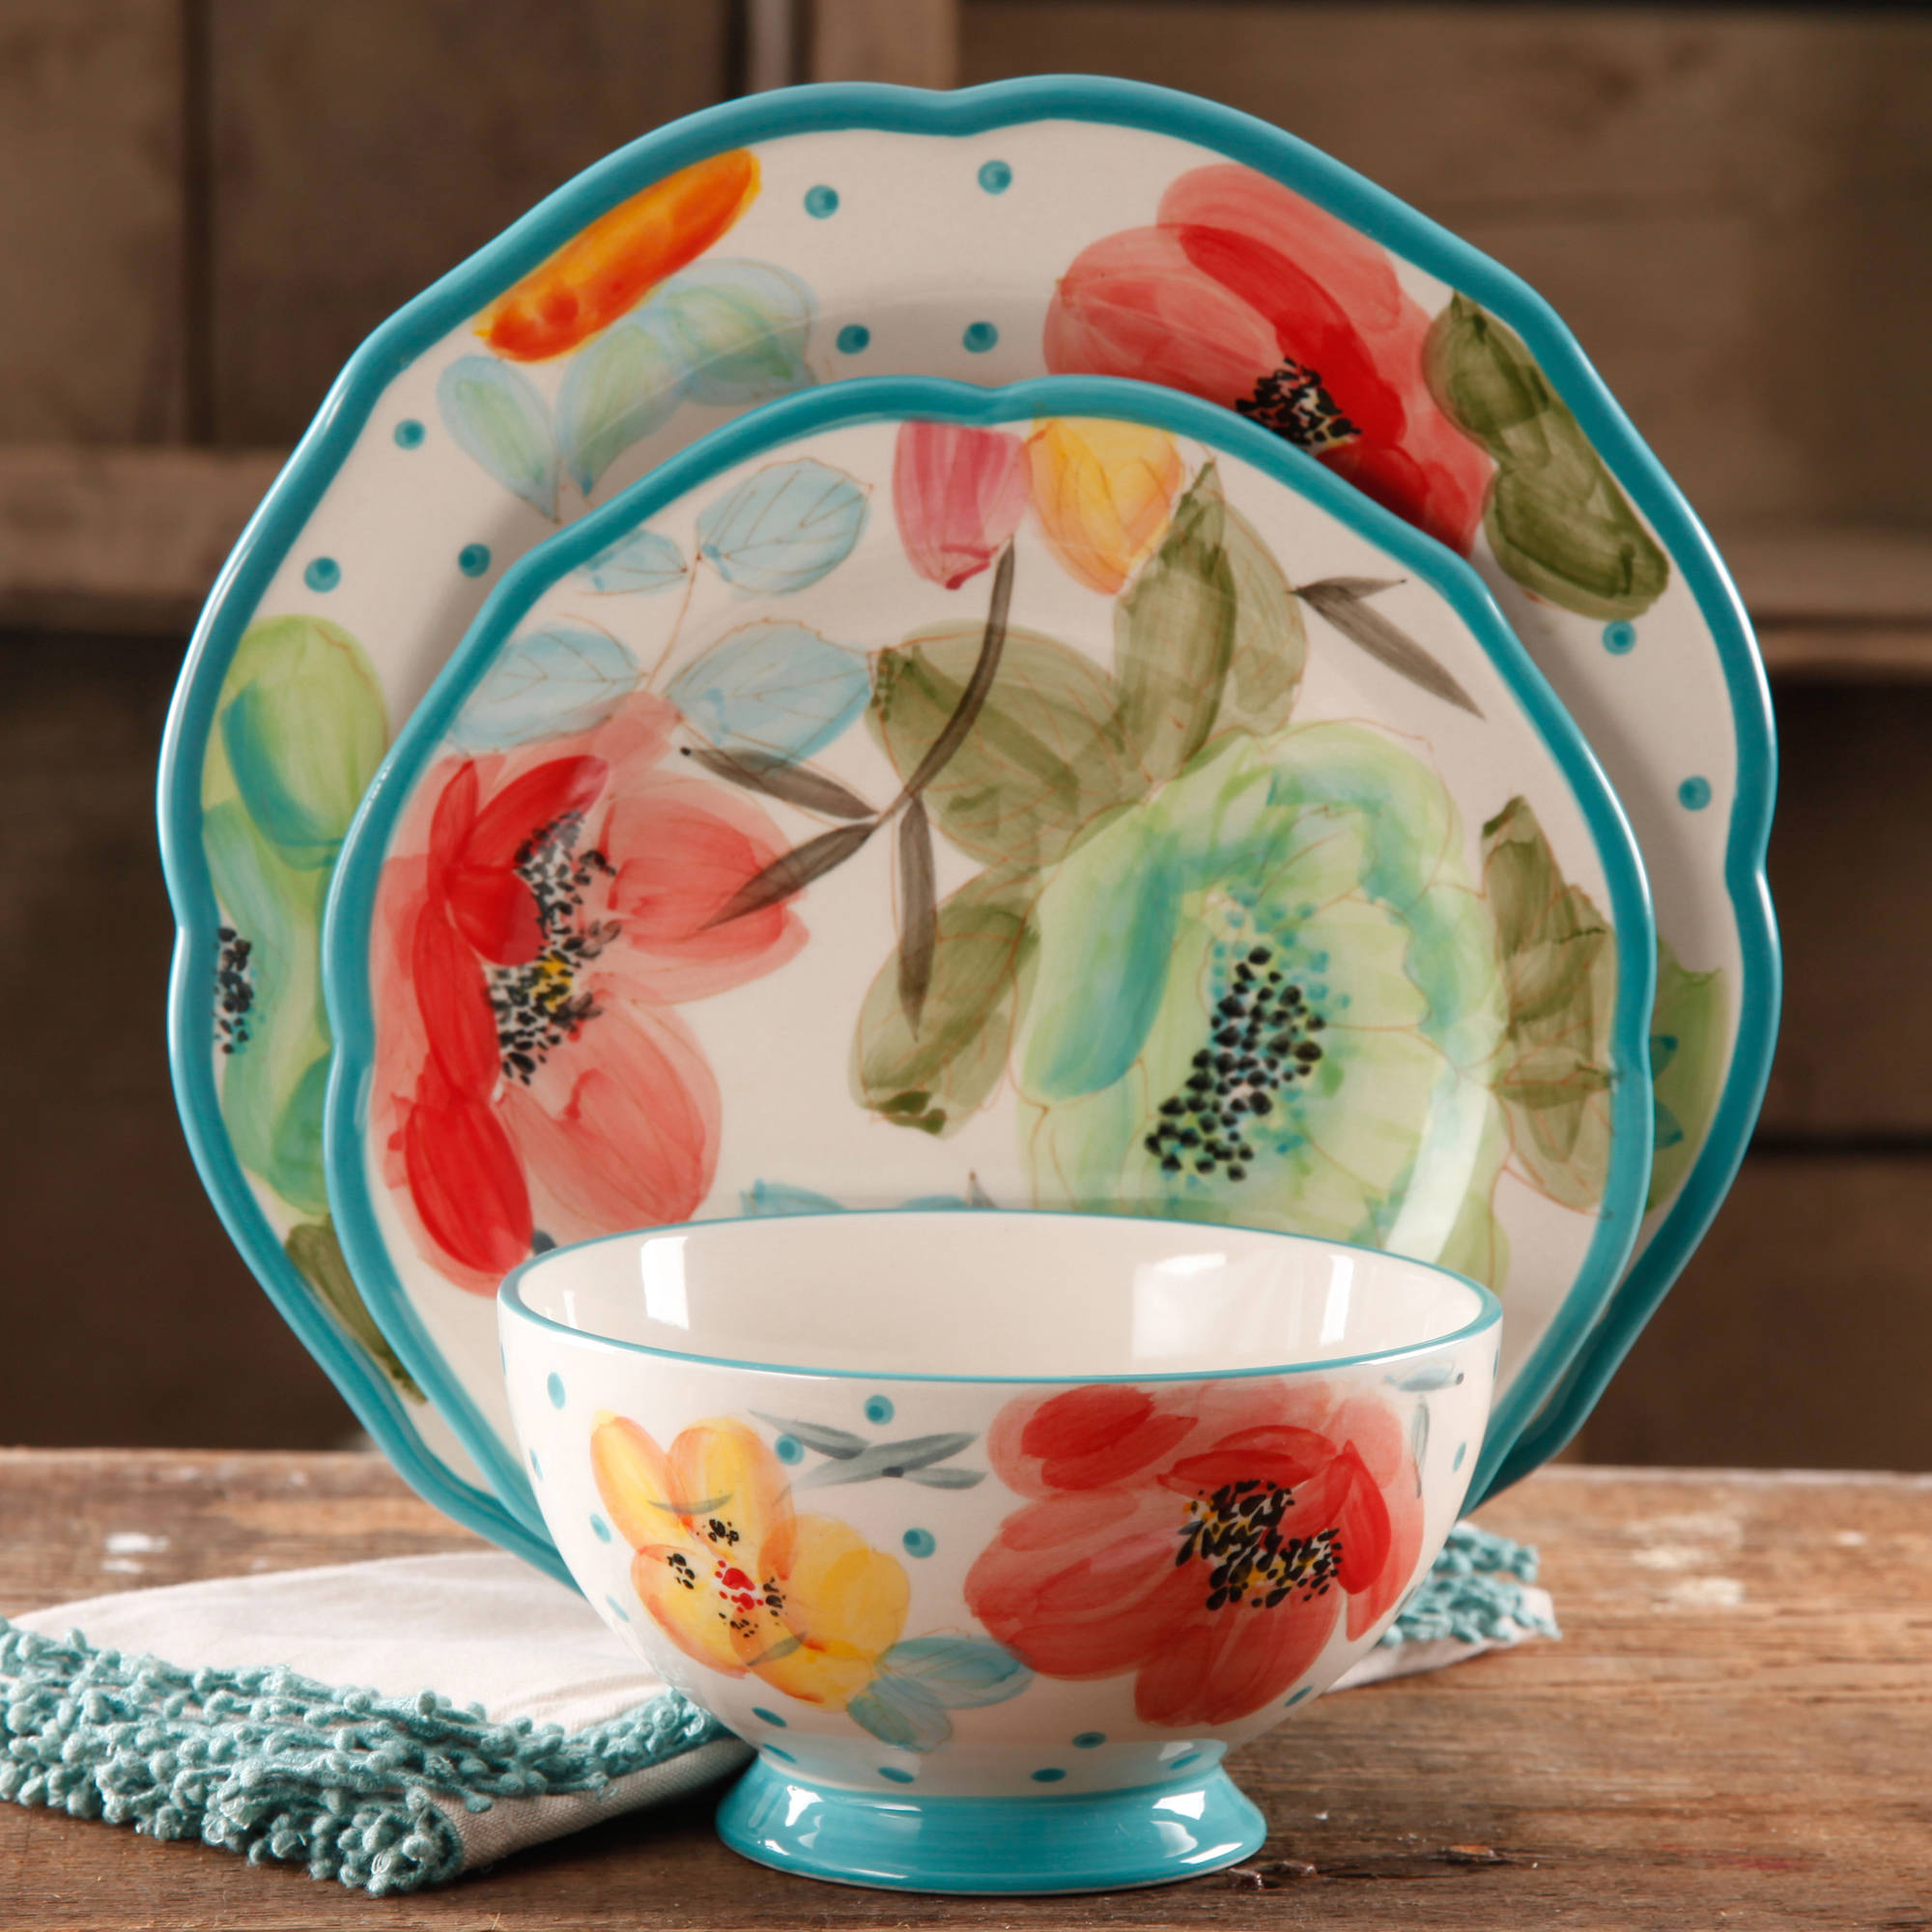 The Pioneer Woman Vintage Bloom 12-Piece Decorated Dinnerware Set - Walmart.com  sc 1 st  Walmart & The Pioneer Woman Vintage Bloom 12-Piece Decorated Dinnerware Set ...